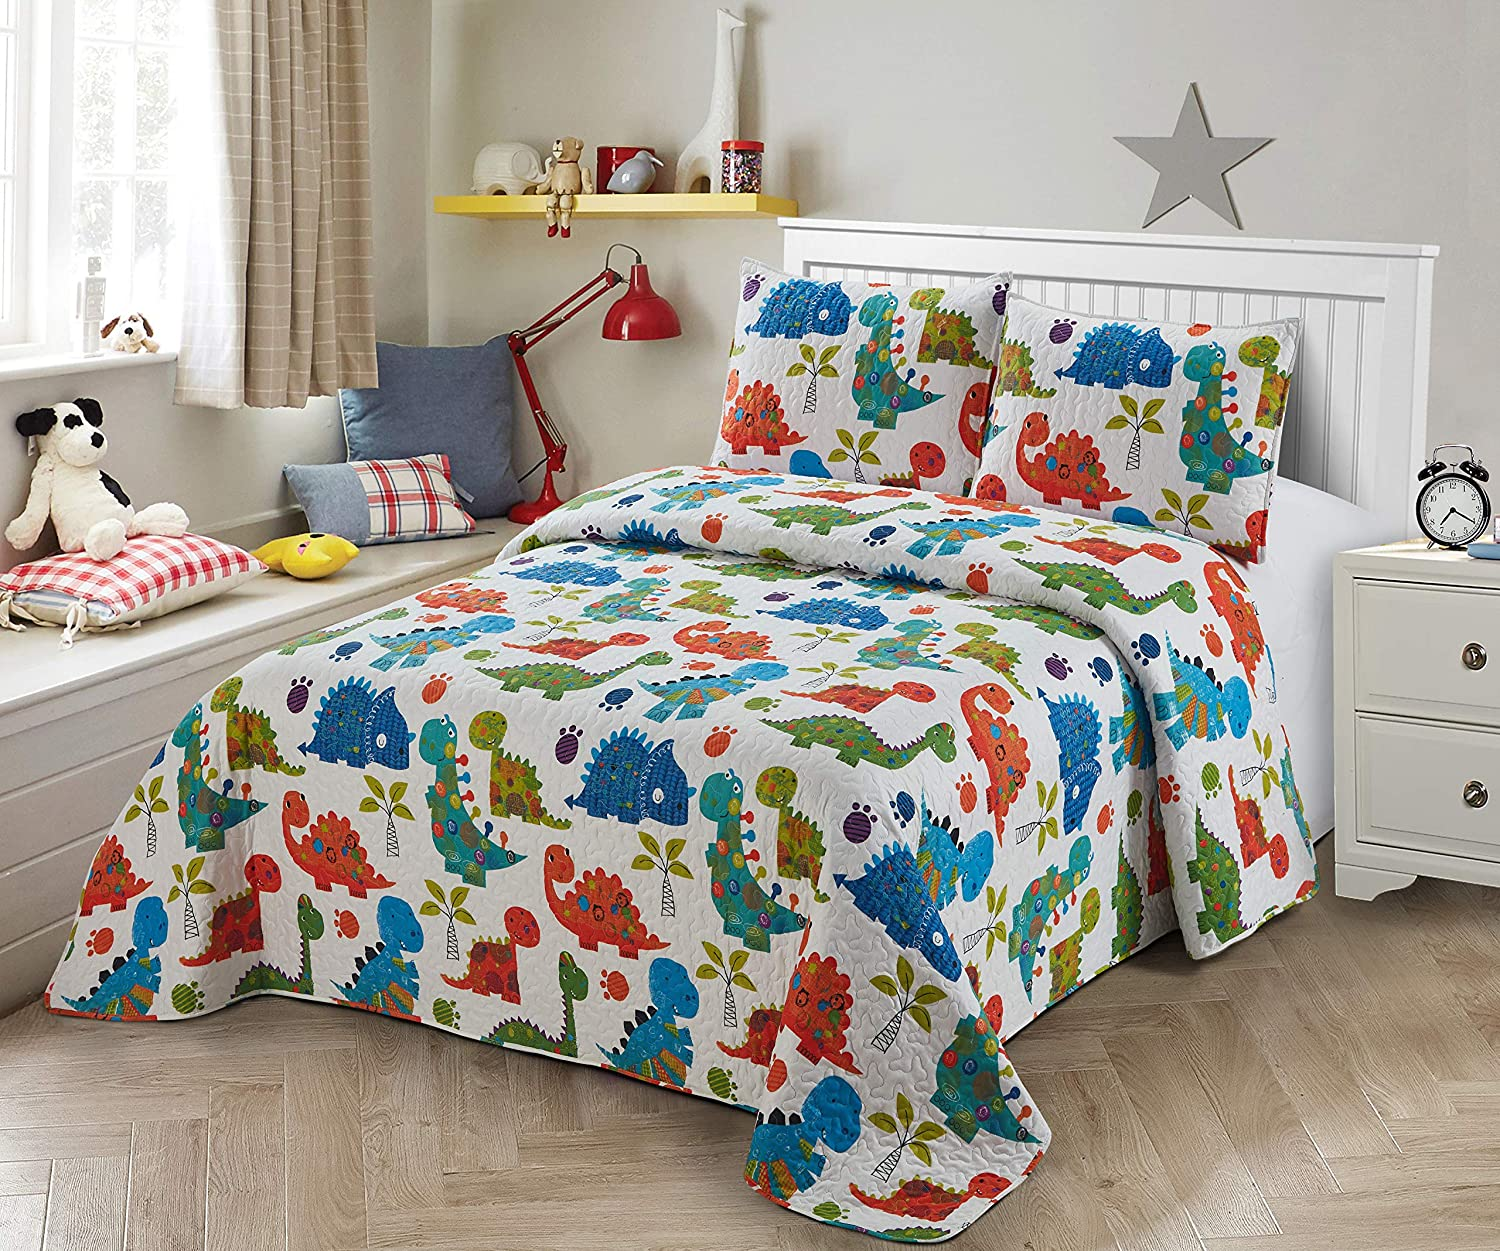 Better Home Style Blue Green Orange Purple Dinosaurs World Kids/Boys/Toddler 3 Piece Coverlet Bedspread Quilt Set with Pillowcases # Baby Dinosaur (Queen/Full)